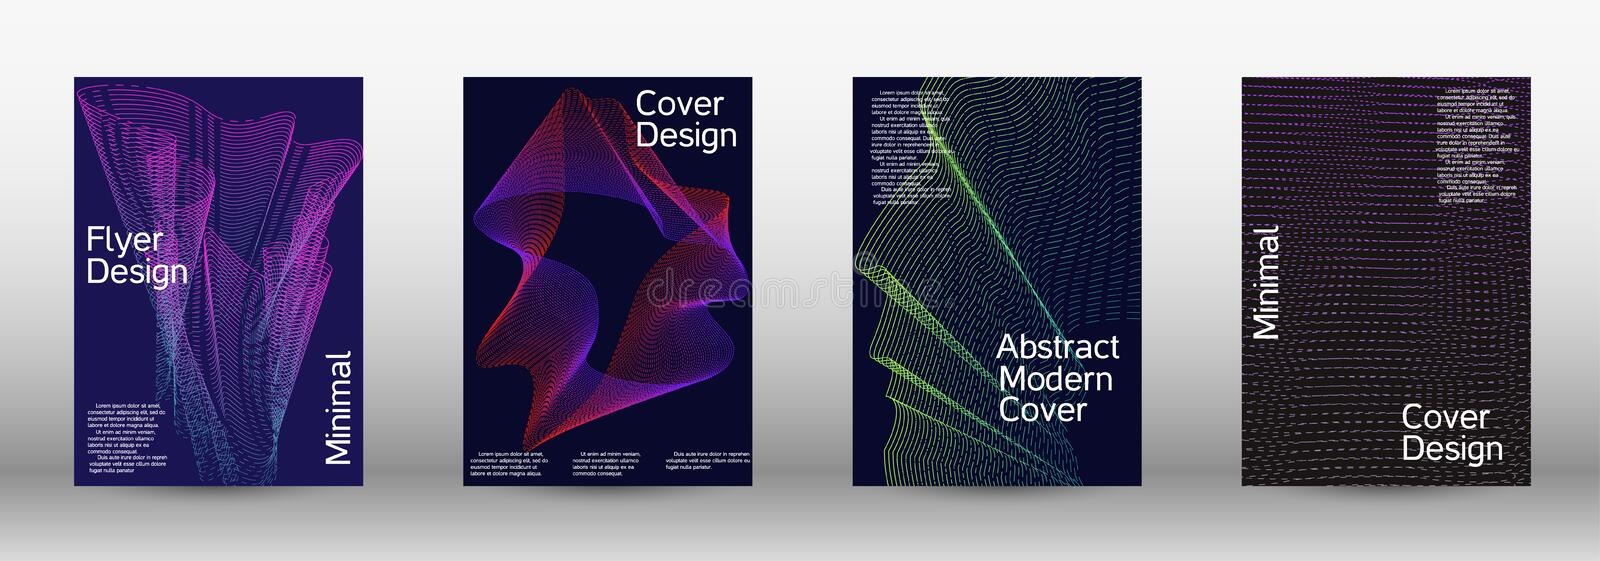 Minimum coverage of a vector. A set of modern abstract backgrounds with abstract gradient linear waves. Sound flyer for creating a fashionable abstract cover royalty free stock photo